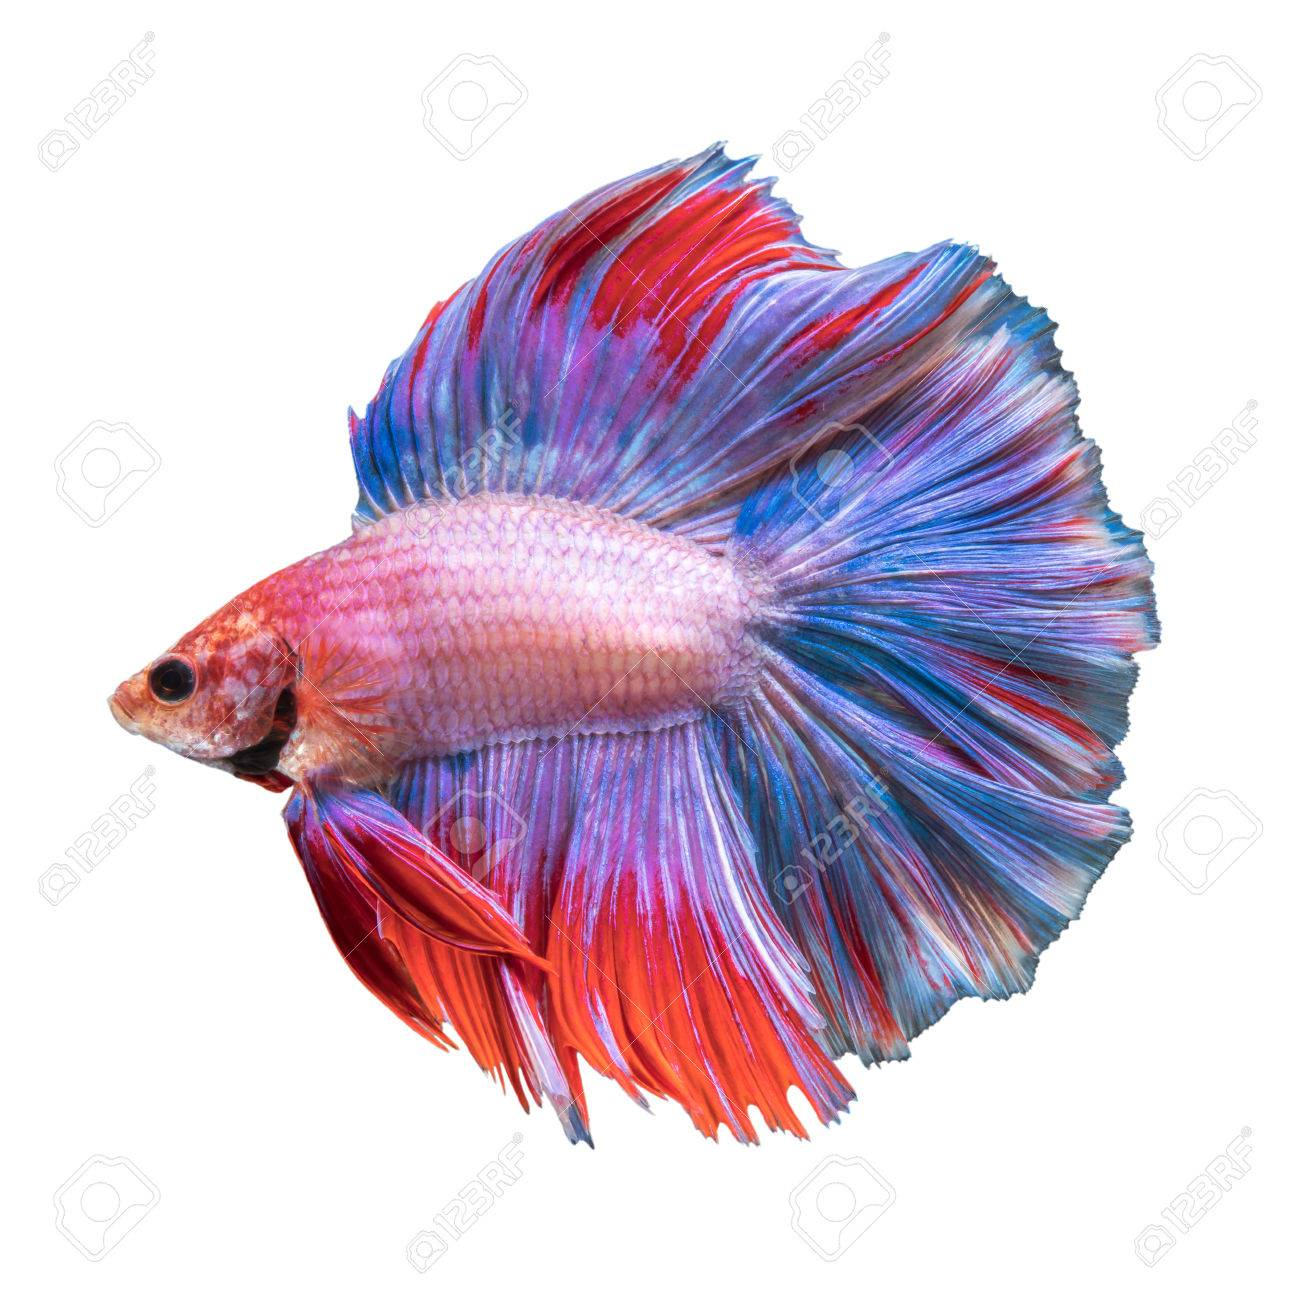 Double Tail Betta Fish Siamese Fighting Fish On White Background Stock Photo Picture And Royalty Free Image Image 59638818